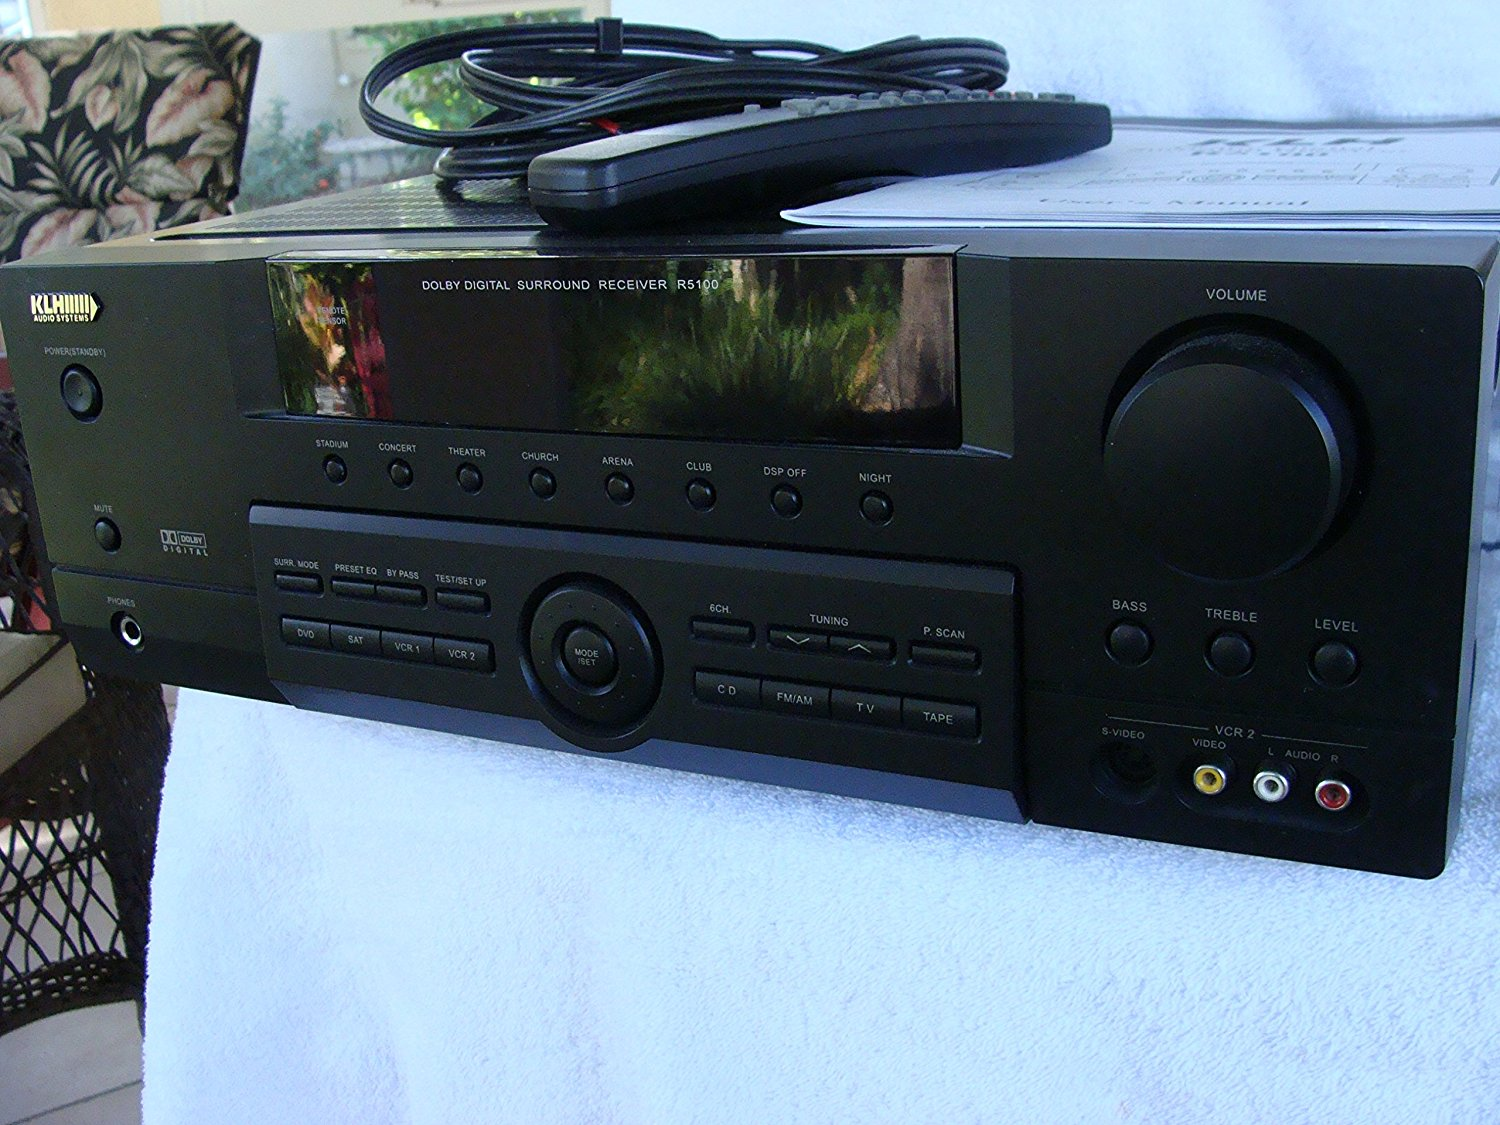 Klh r5100 surround sound receiver w/ manual, remote & cable n3.